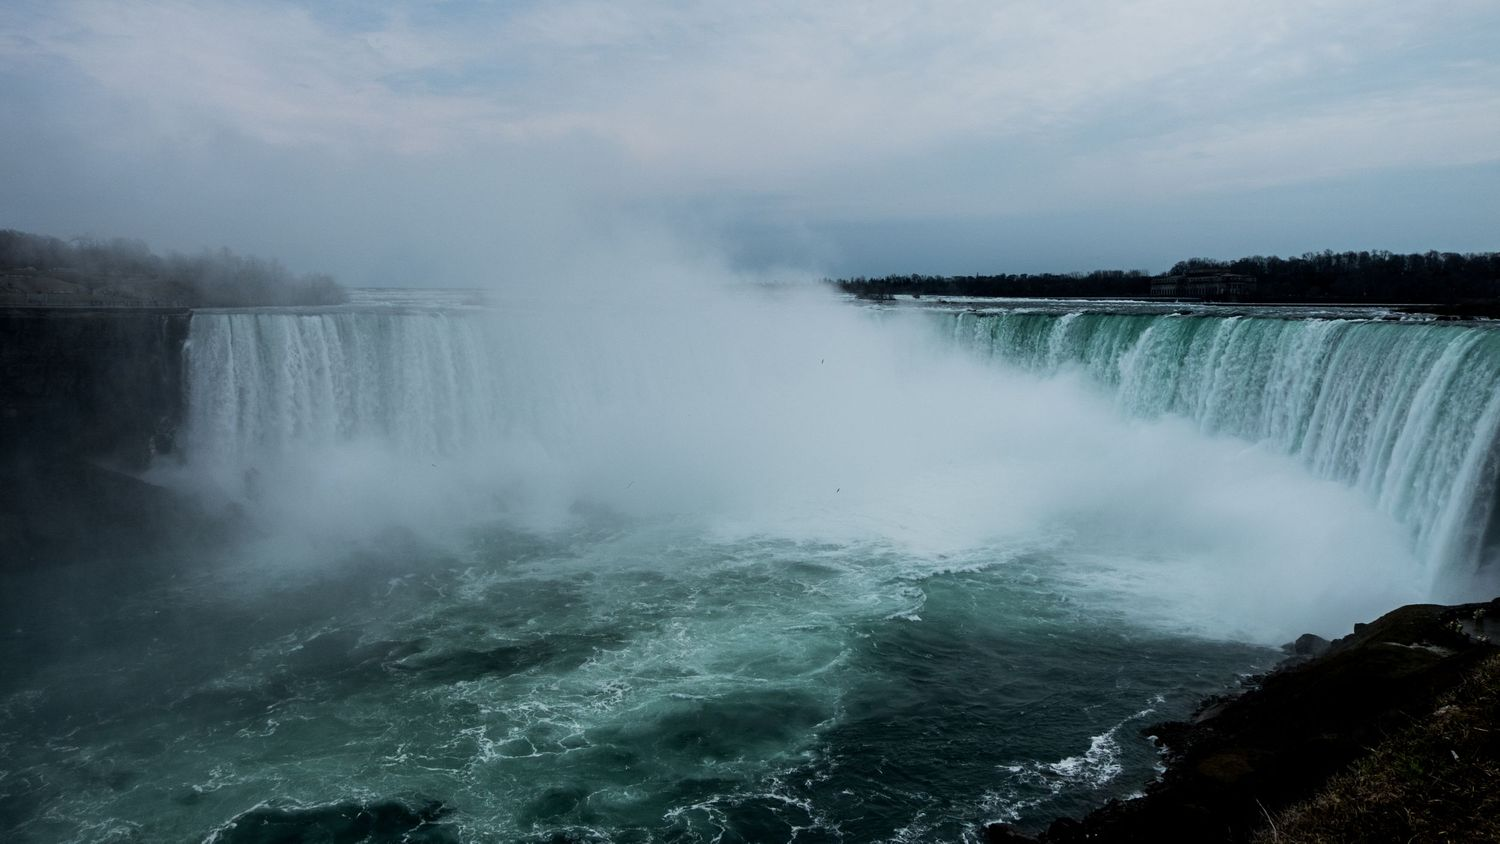 A massive horseshoe shaped water fall on an overcast day, full of mist